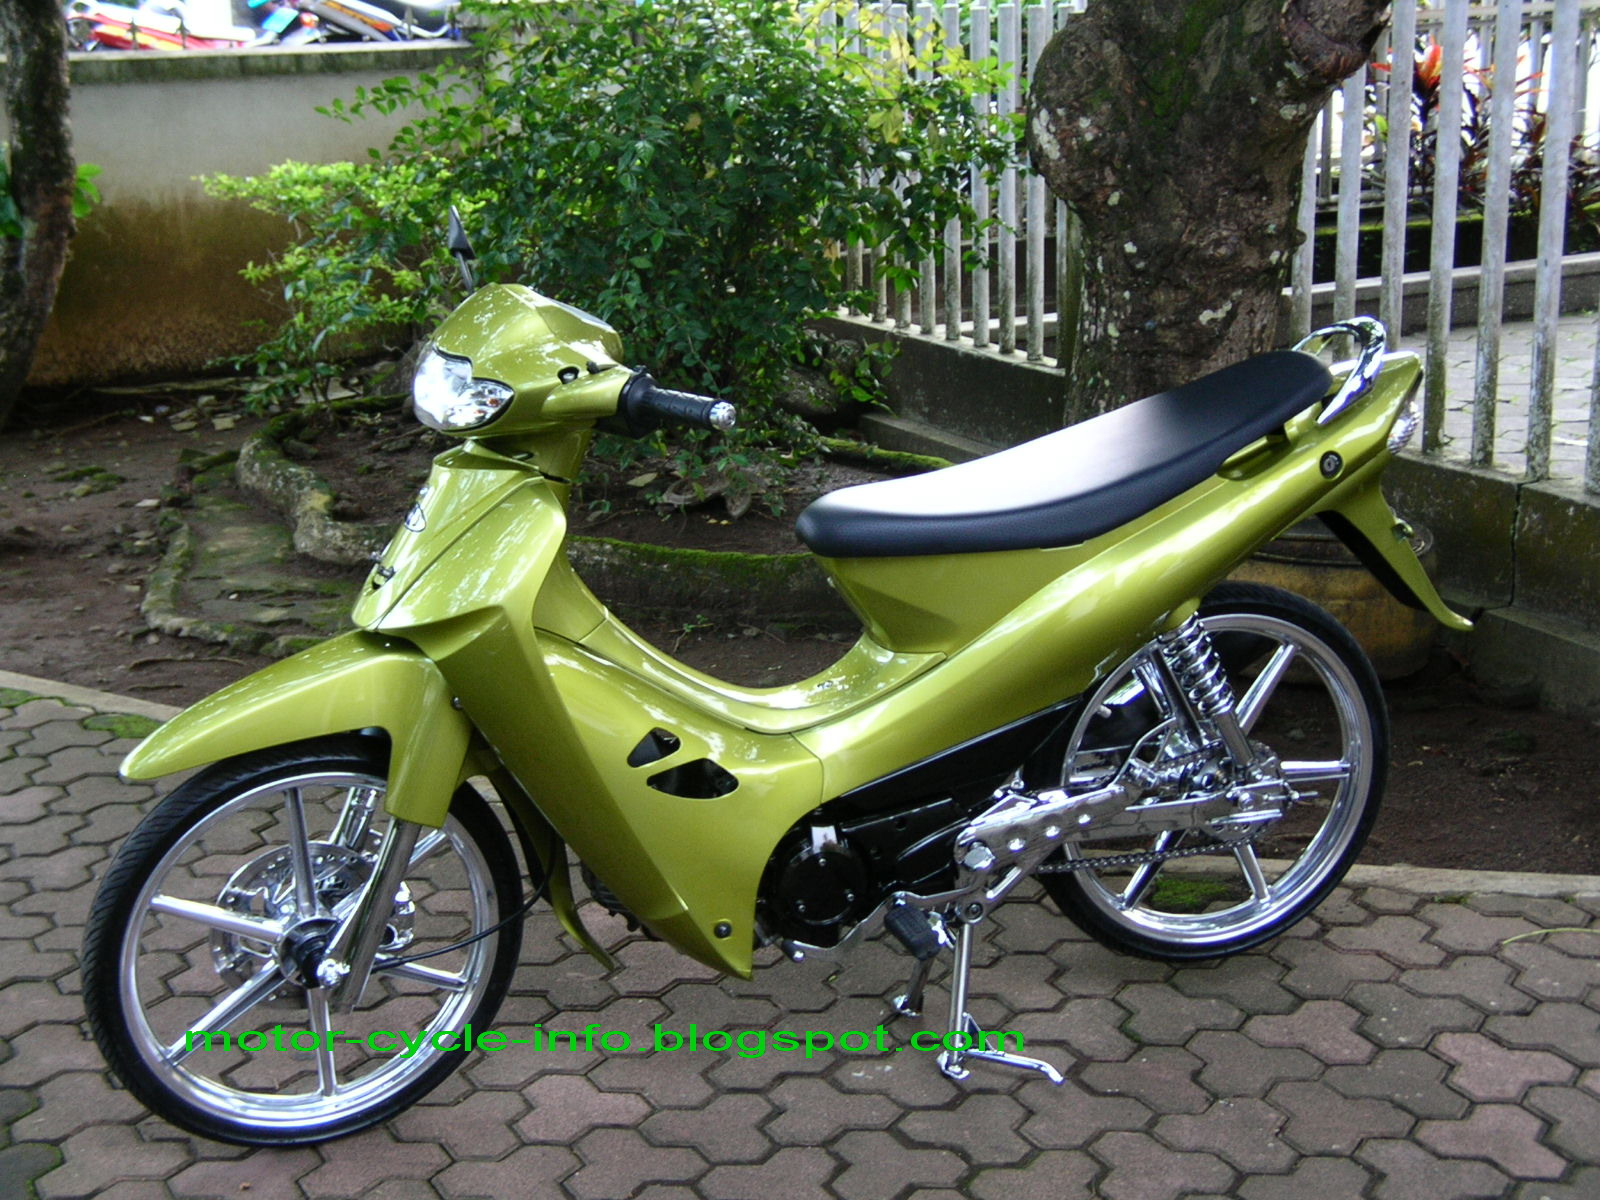 this kawasaki motorcycle model